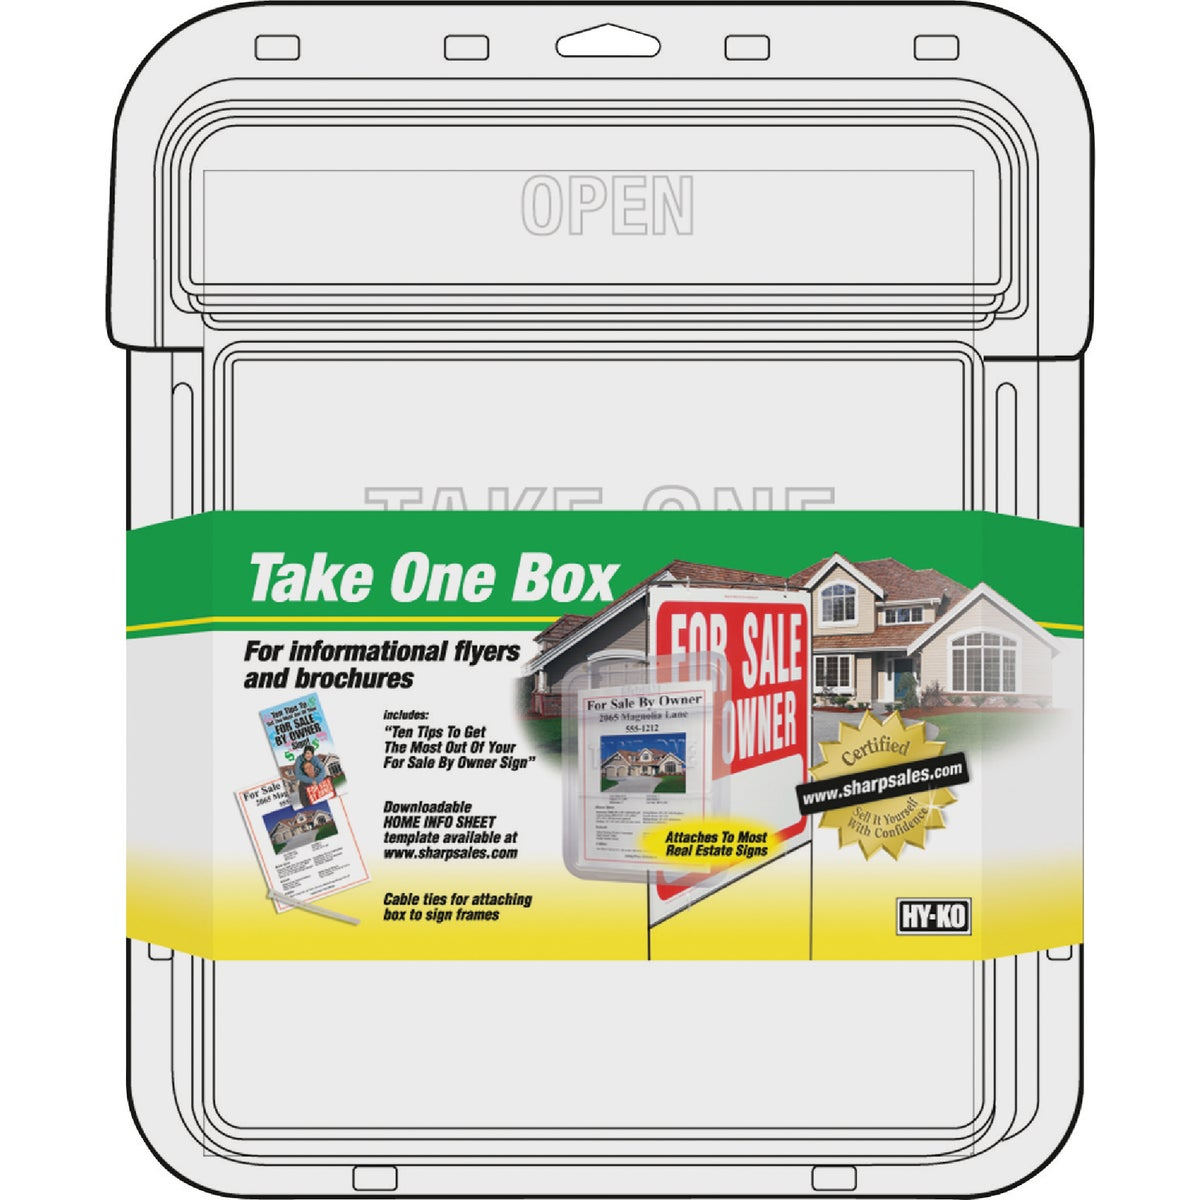 TAKE ONE BOX - 22131 by Hy Ko Prods Co